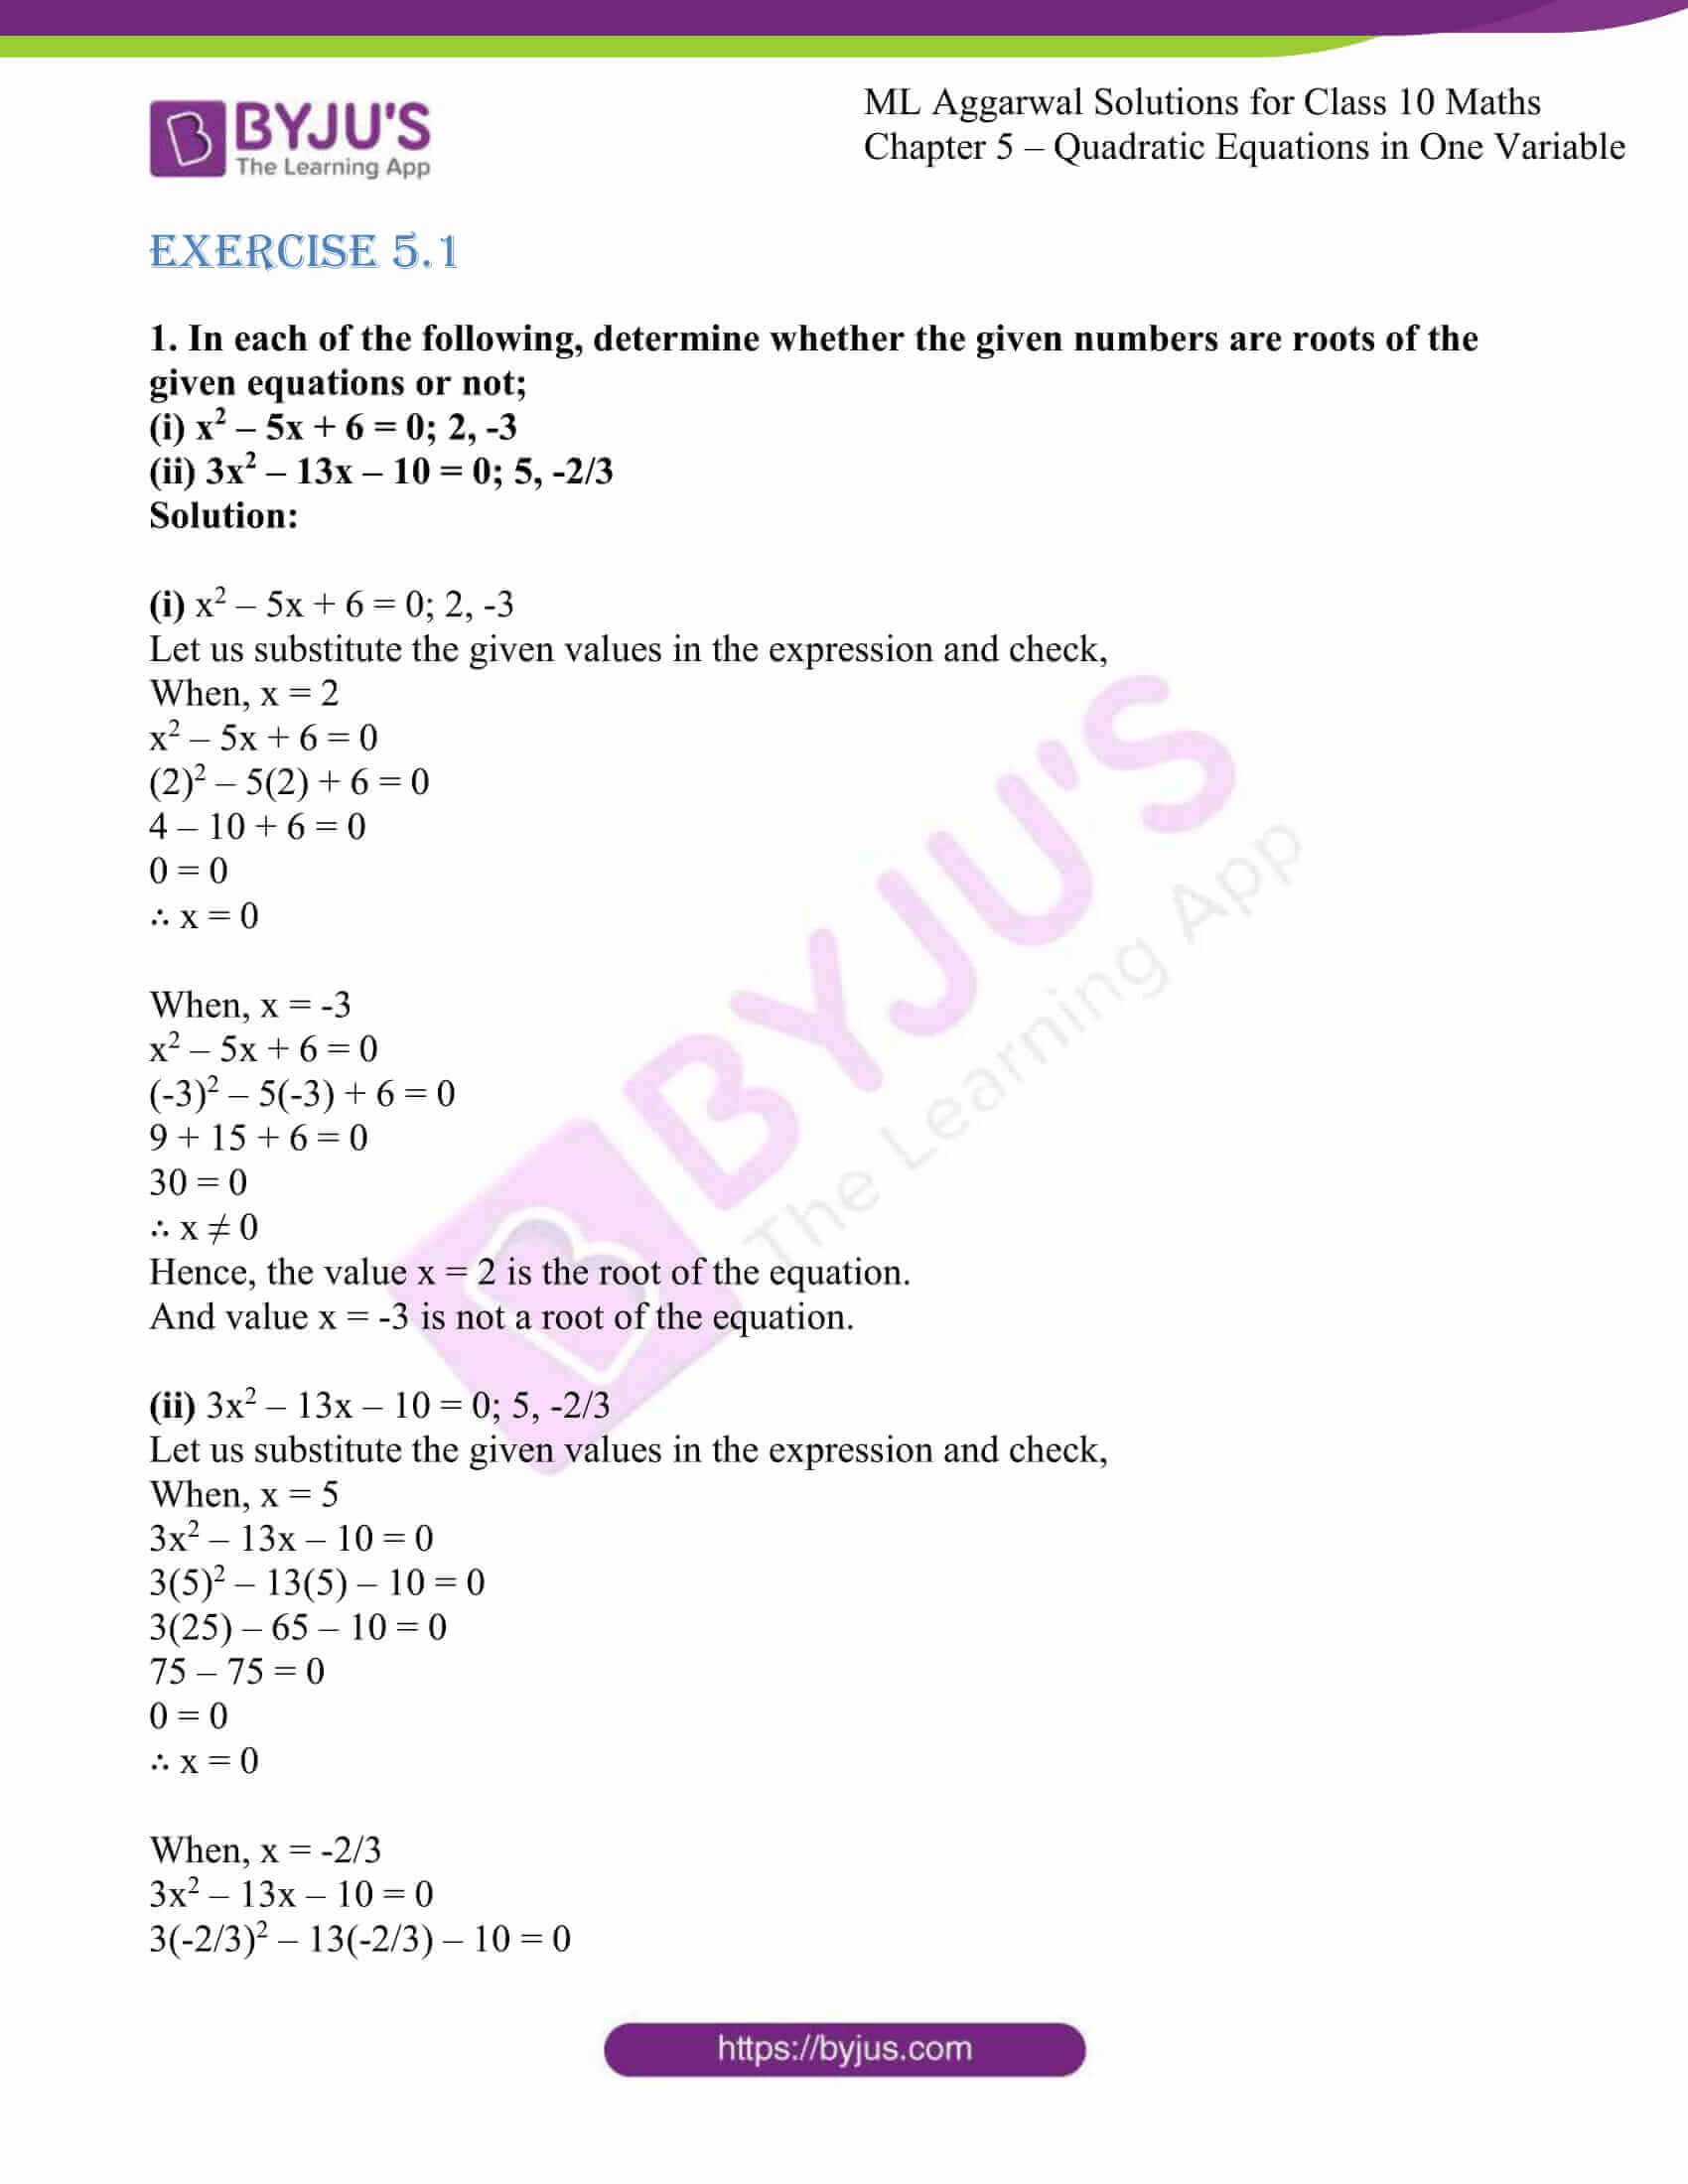 ml aggarwal solutions class 10 maths chapter 5 01